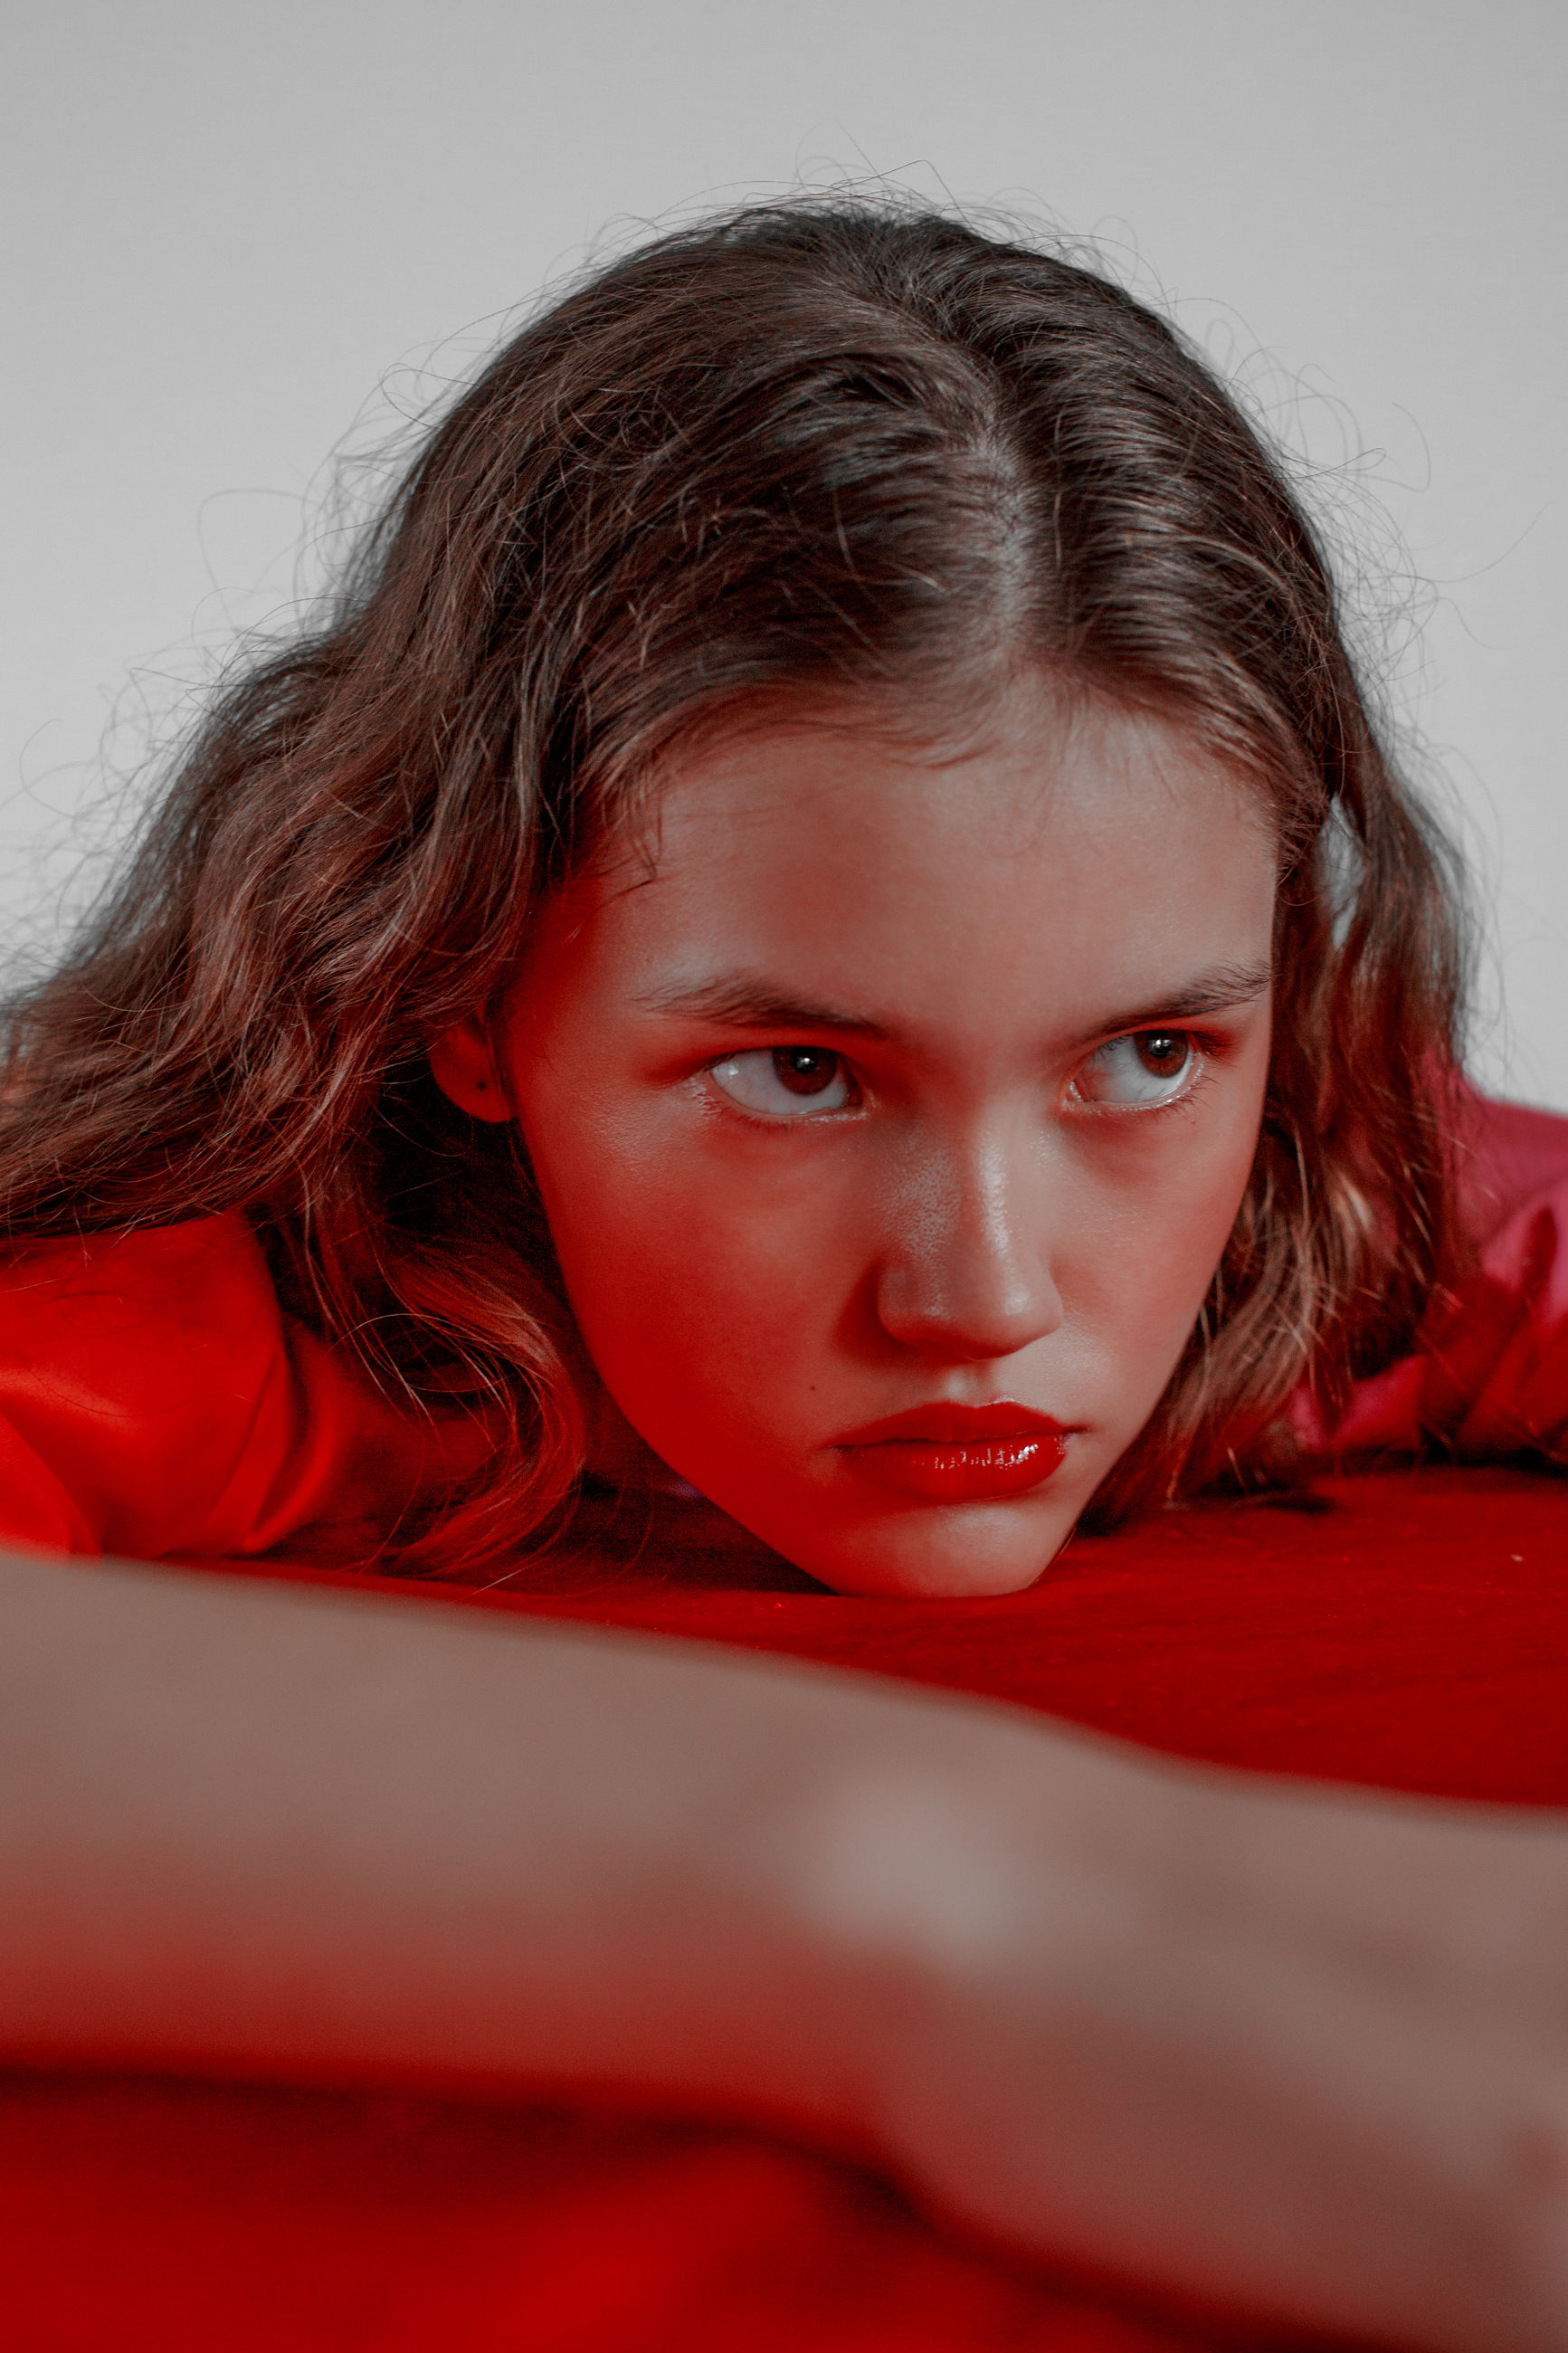 portrait, looking at camera, headshot, one person, indoors, red, front view, young adult, women, lifestyles, real people, studio shot, child, close-up, hairstyle, brown hair, females, gray, contemplation, innocence, teenager, human face